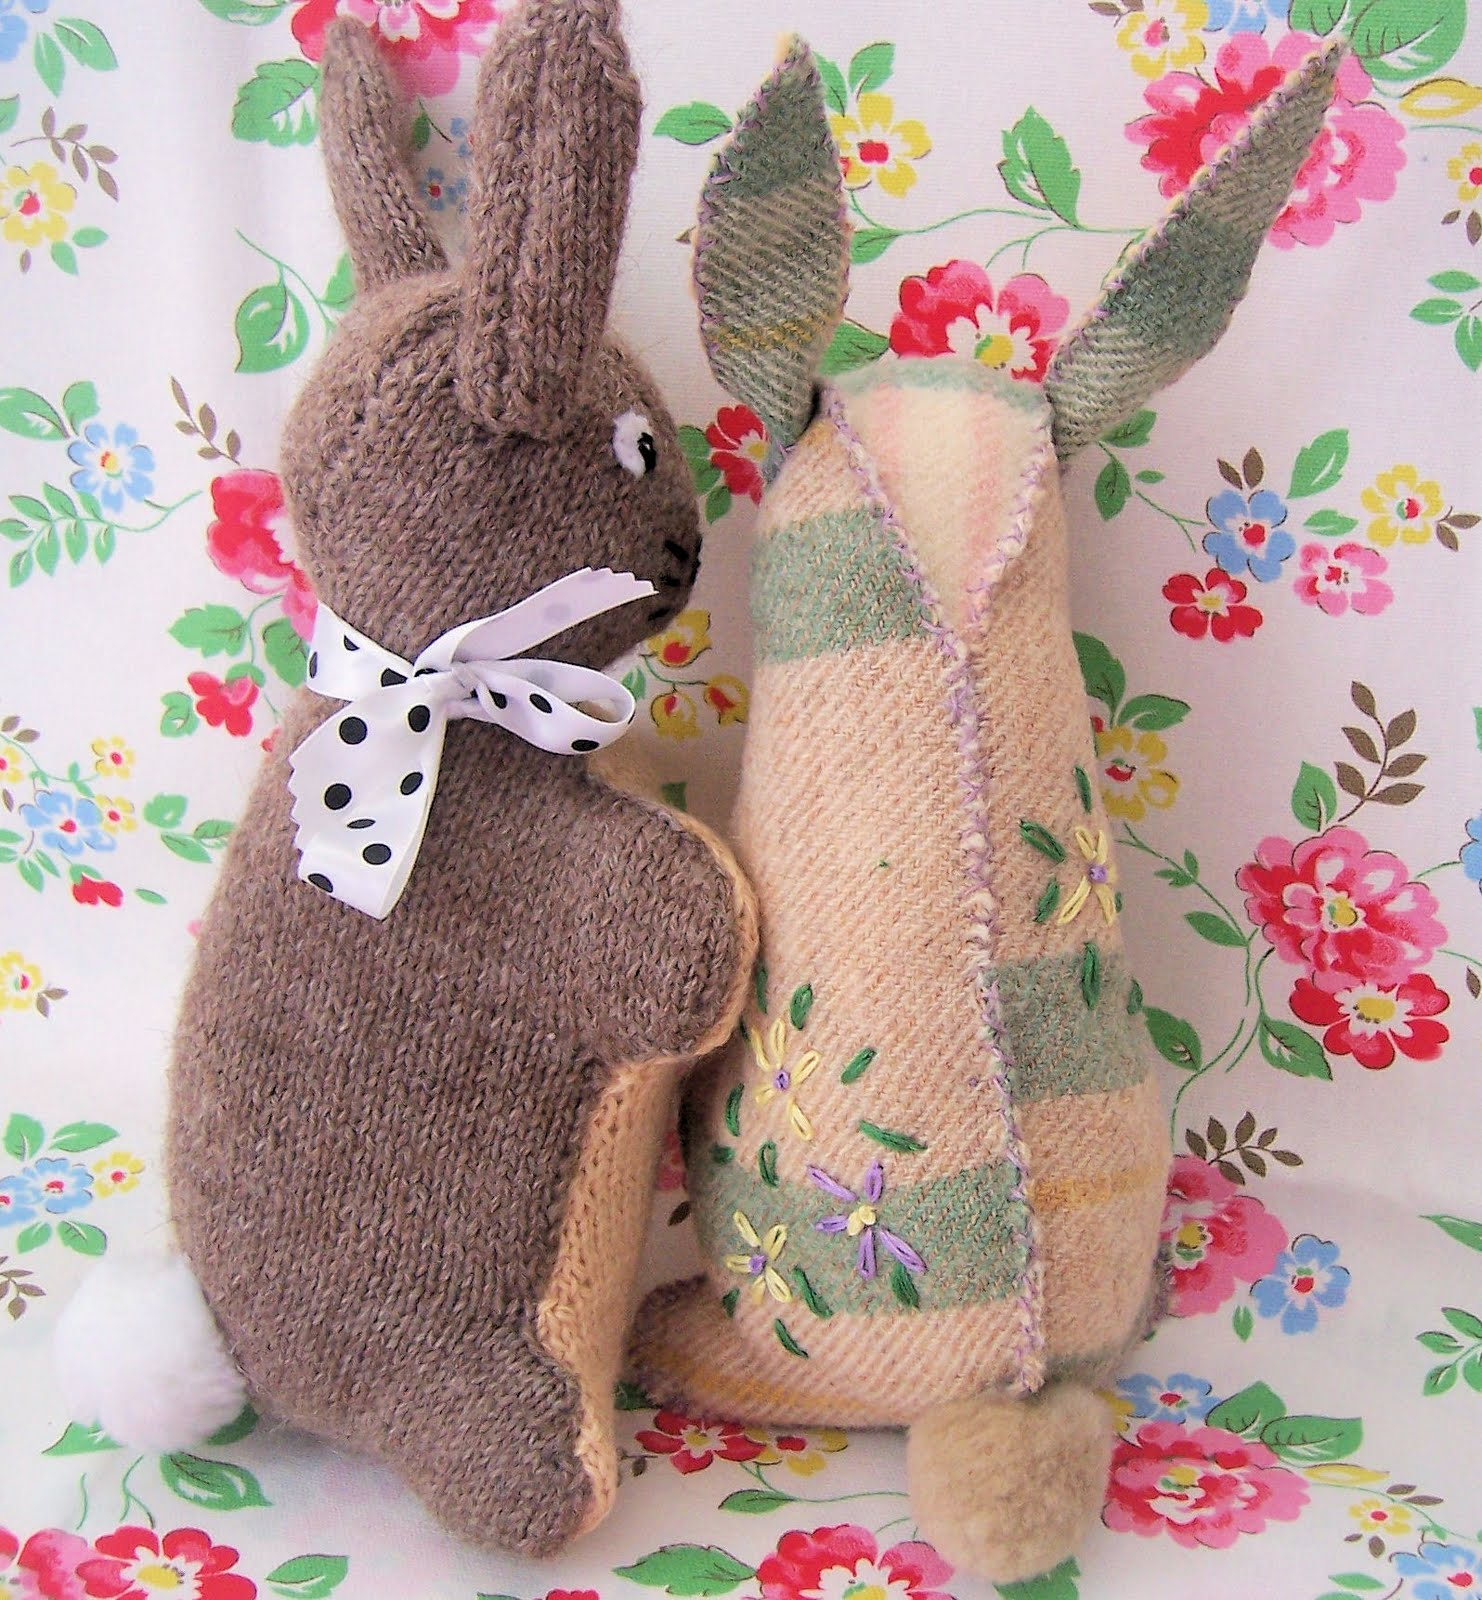 Bunny Pattern To Sew The basic bunny shape is the